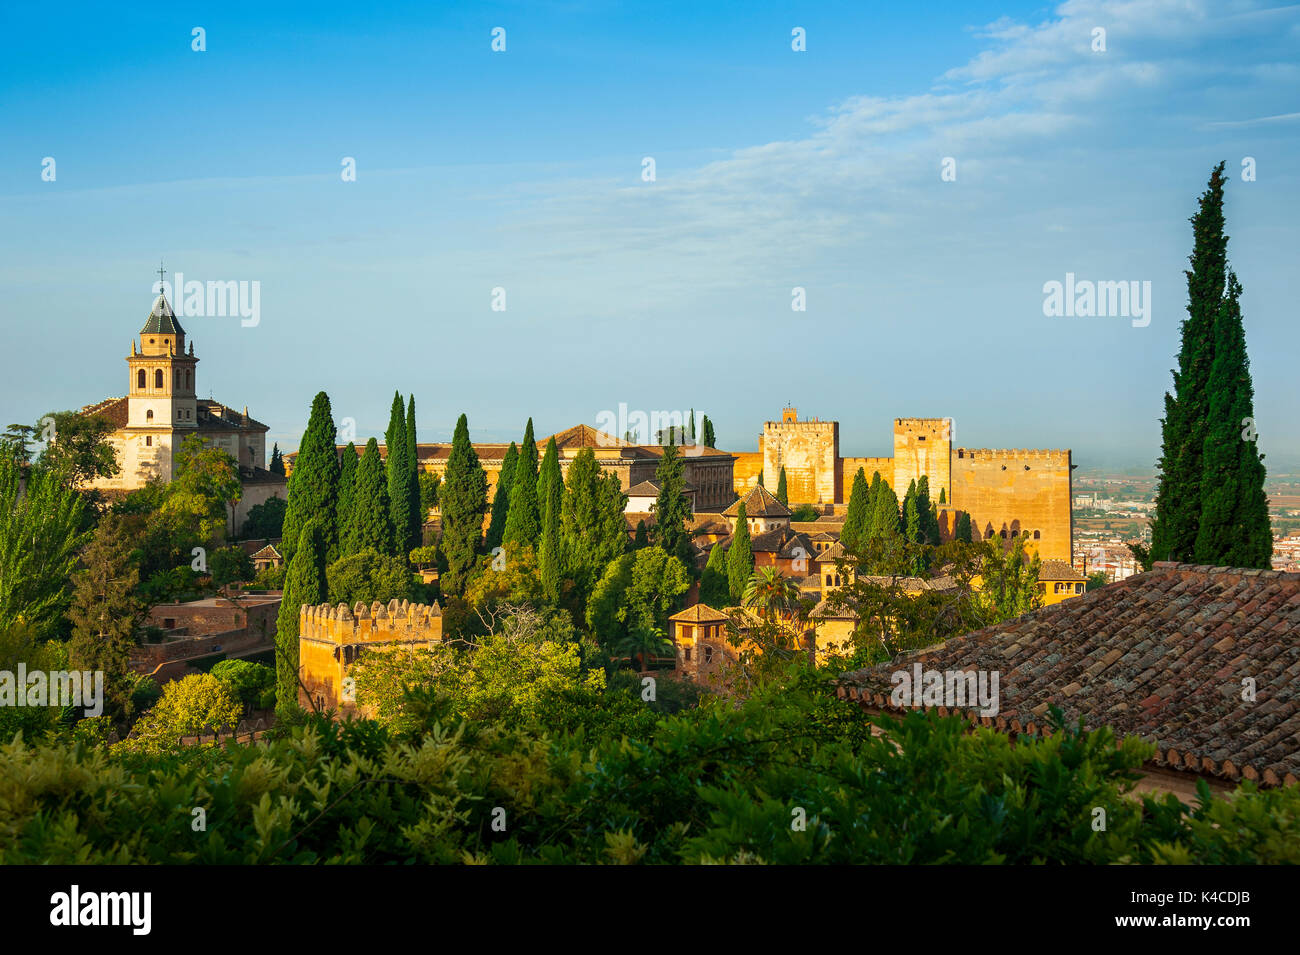 Alhambra In Granada, View In The Morning To The Nasrid Palace And The Alcazaba, Seen From The Gardens Of The Generalife, Stock Photo